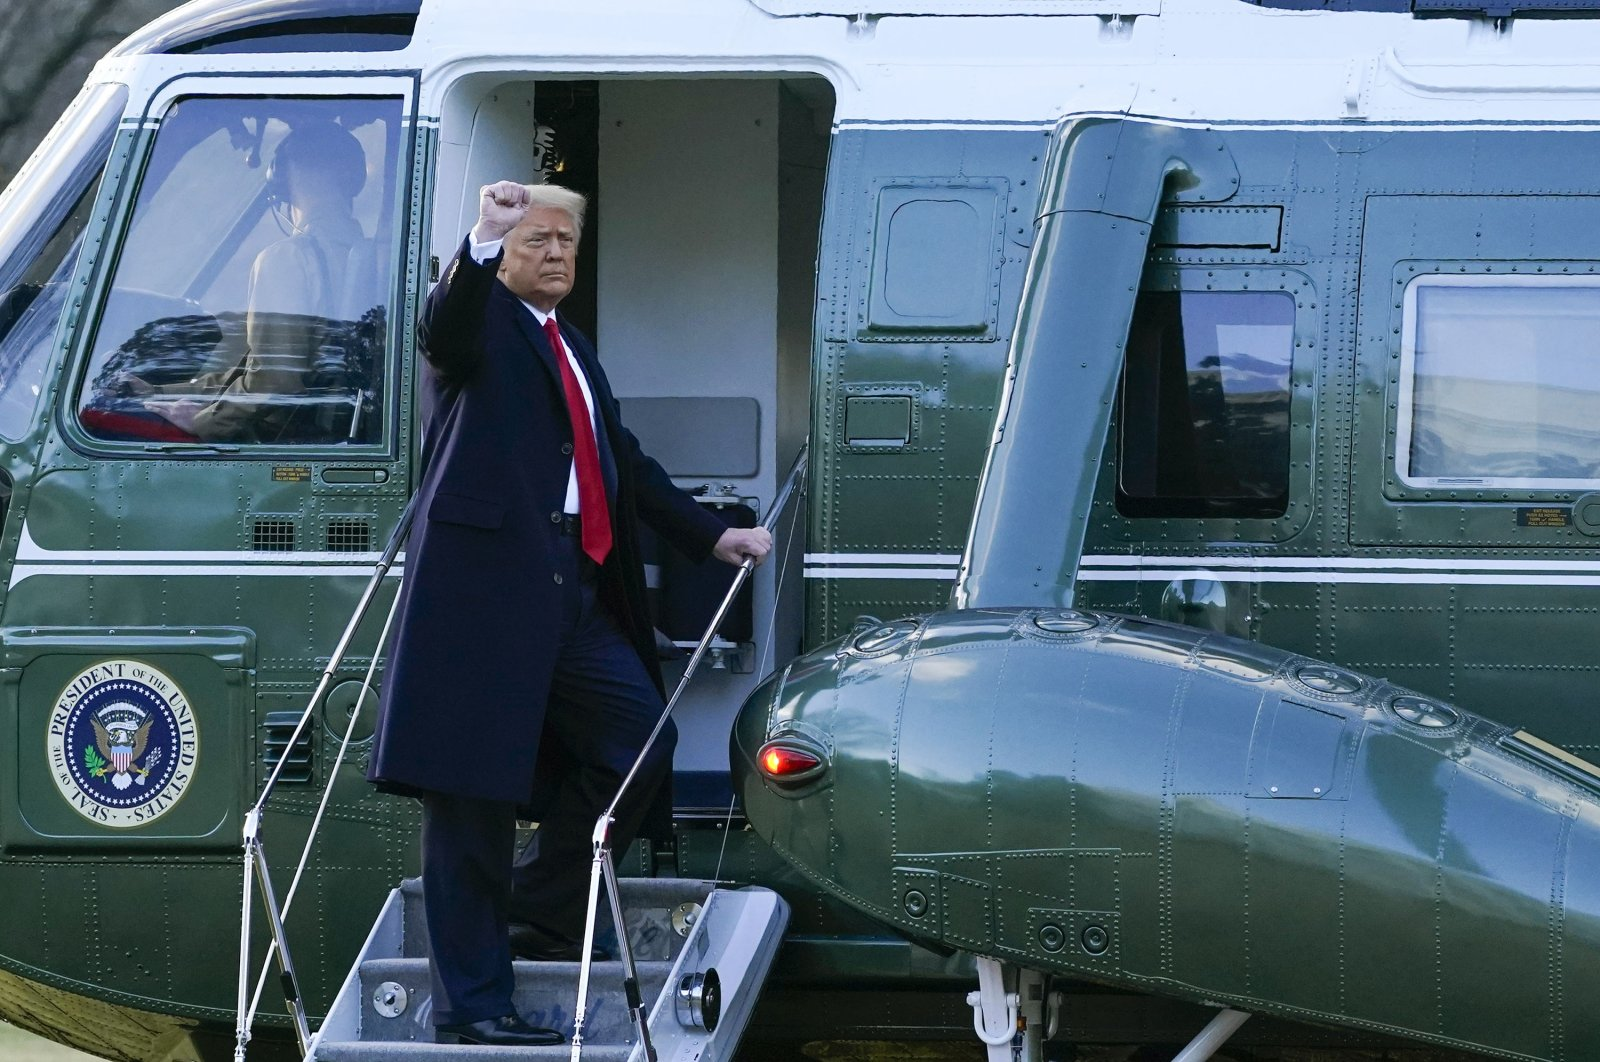 President Donald Trump gestures as he boards Marine One on the South Lawn of the White House, in Washington D.C. on Jan. 20, 2021. (AP Photo)